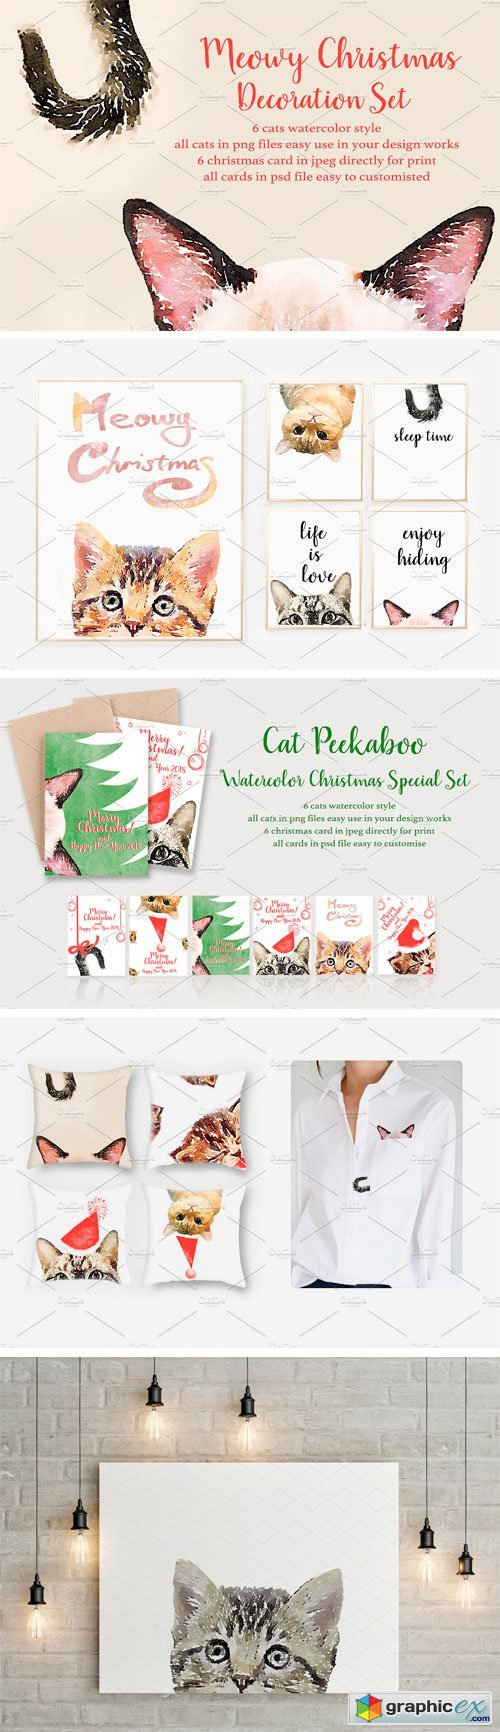 Cat Peekaboo Watercolor Christmas